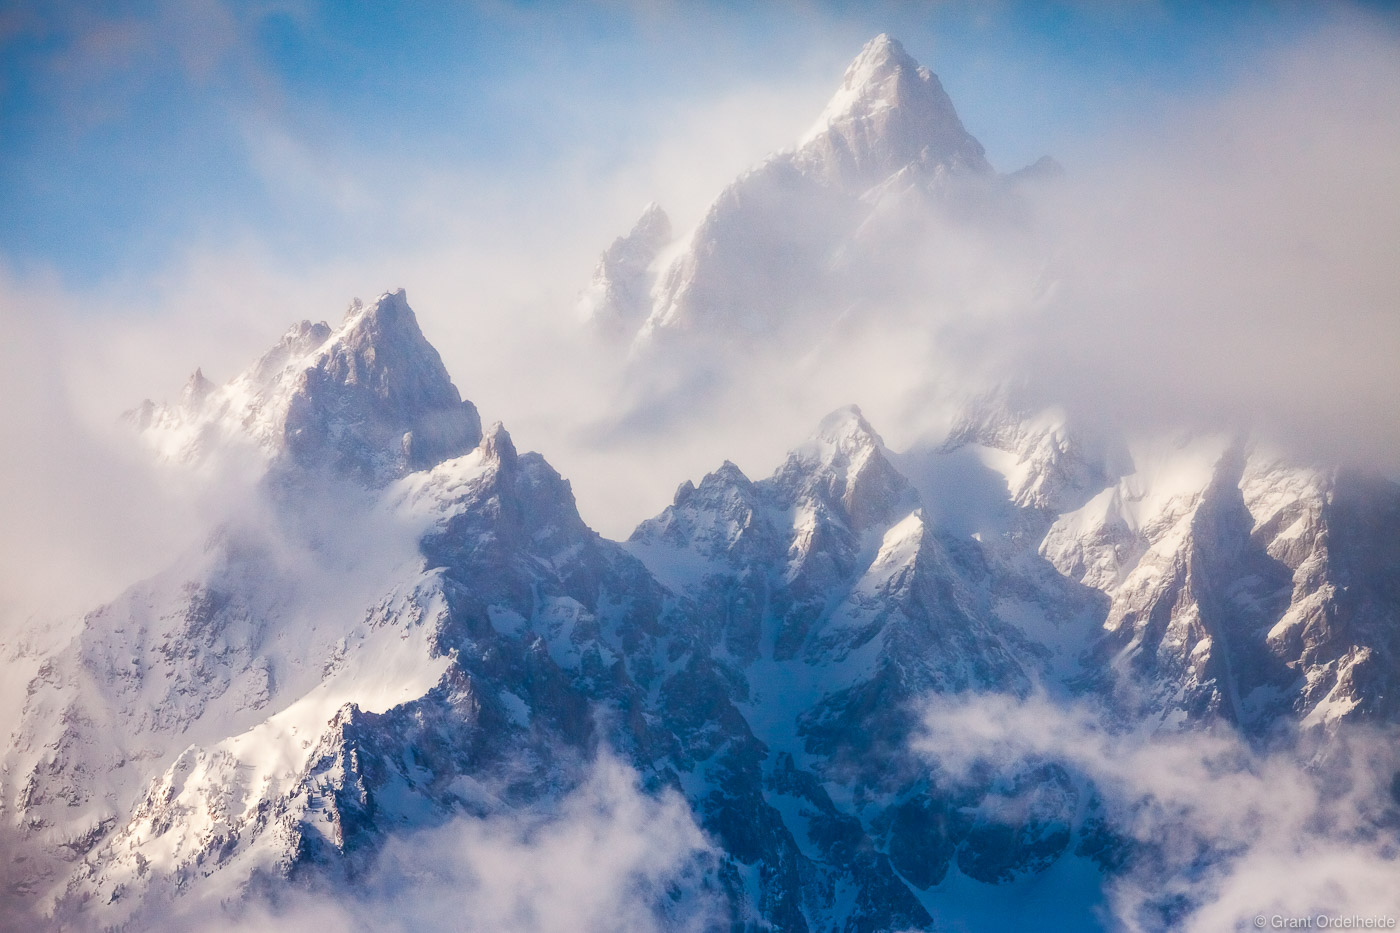 cathedral group, grand teton, national park, wyoming, usa, storm, clearing, winter, teewinot, grand teton, mount owen, photo